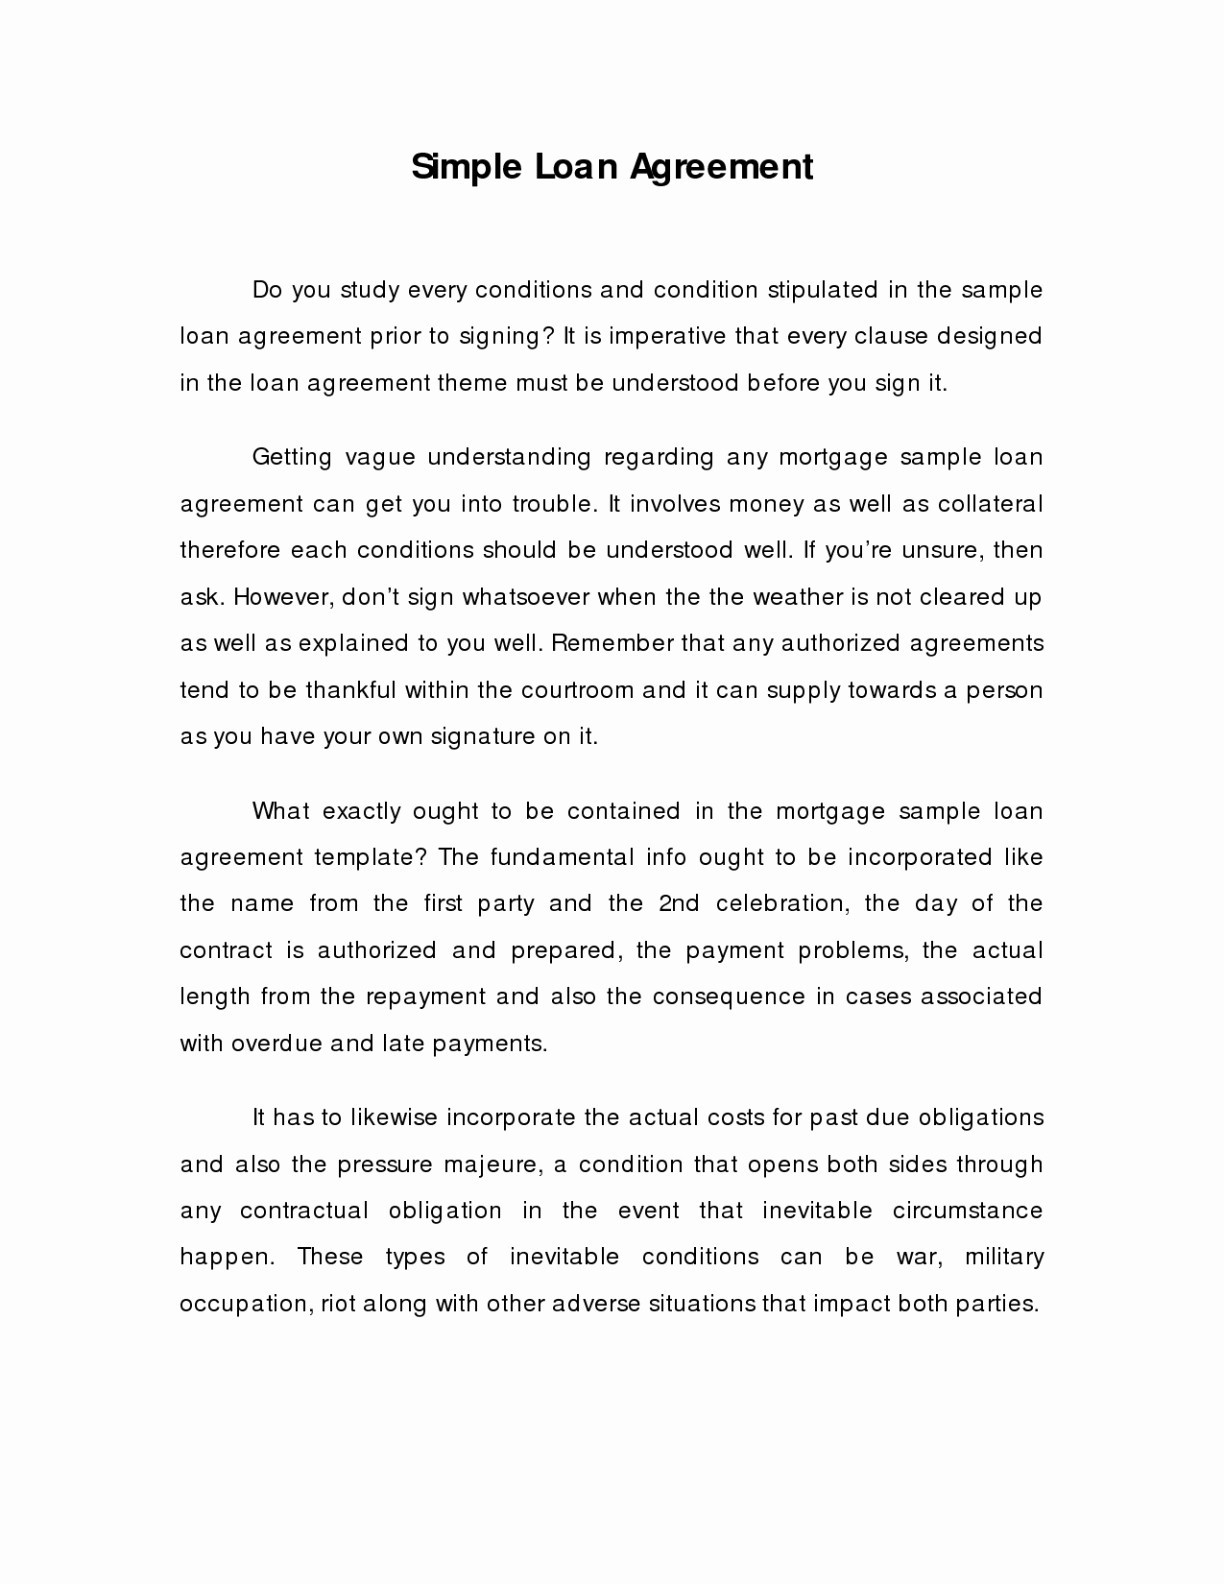 Simple Loan Agreement Template Free Loan Contract Template New With Sample Loan Agreement Letter Format